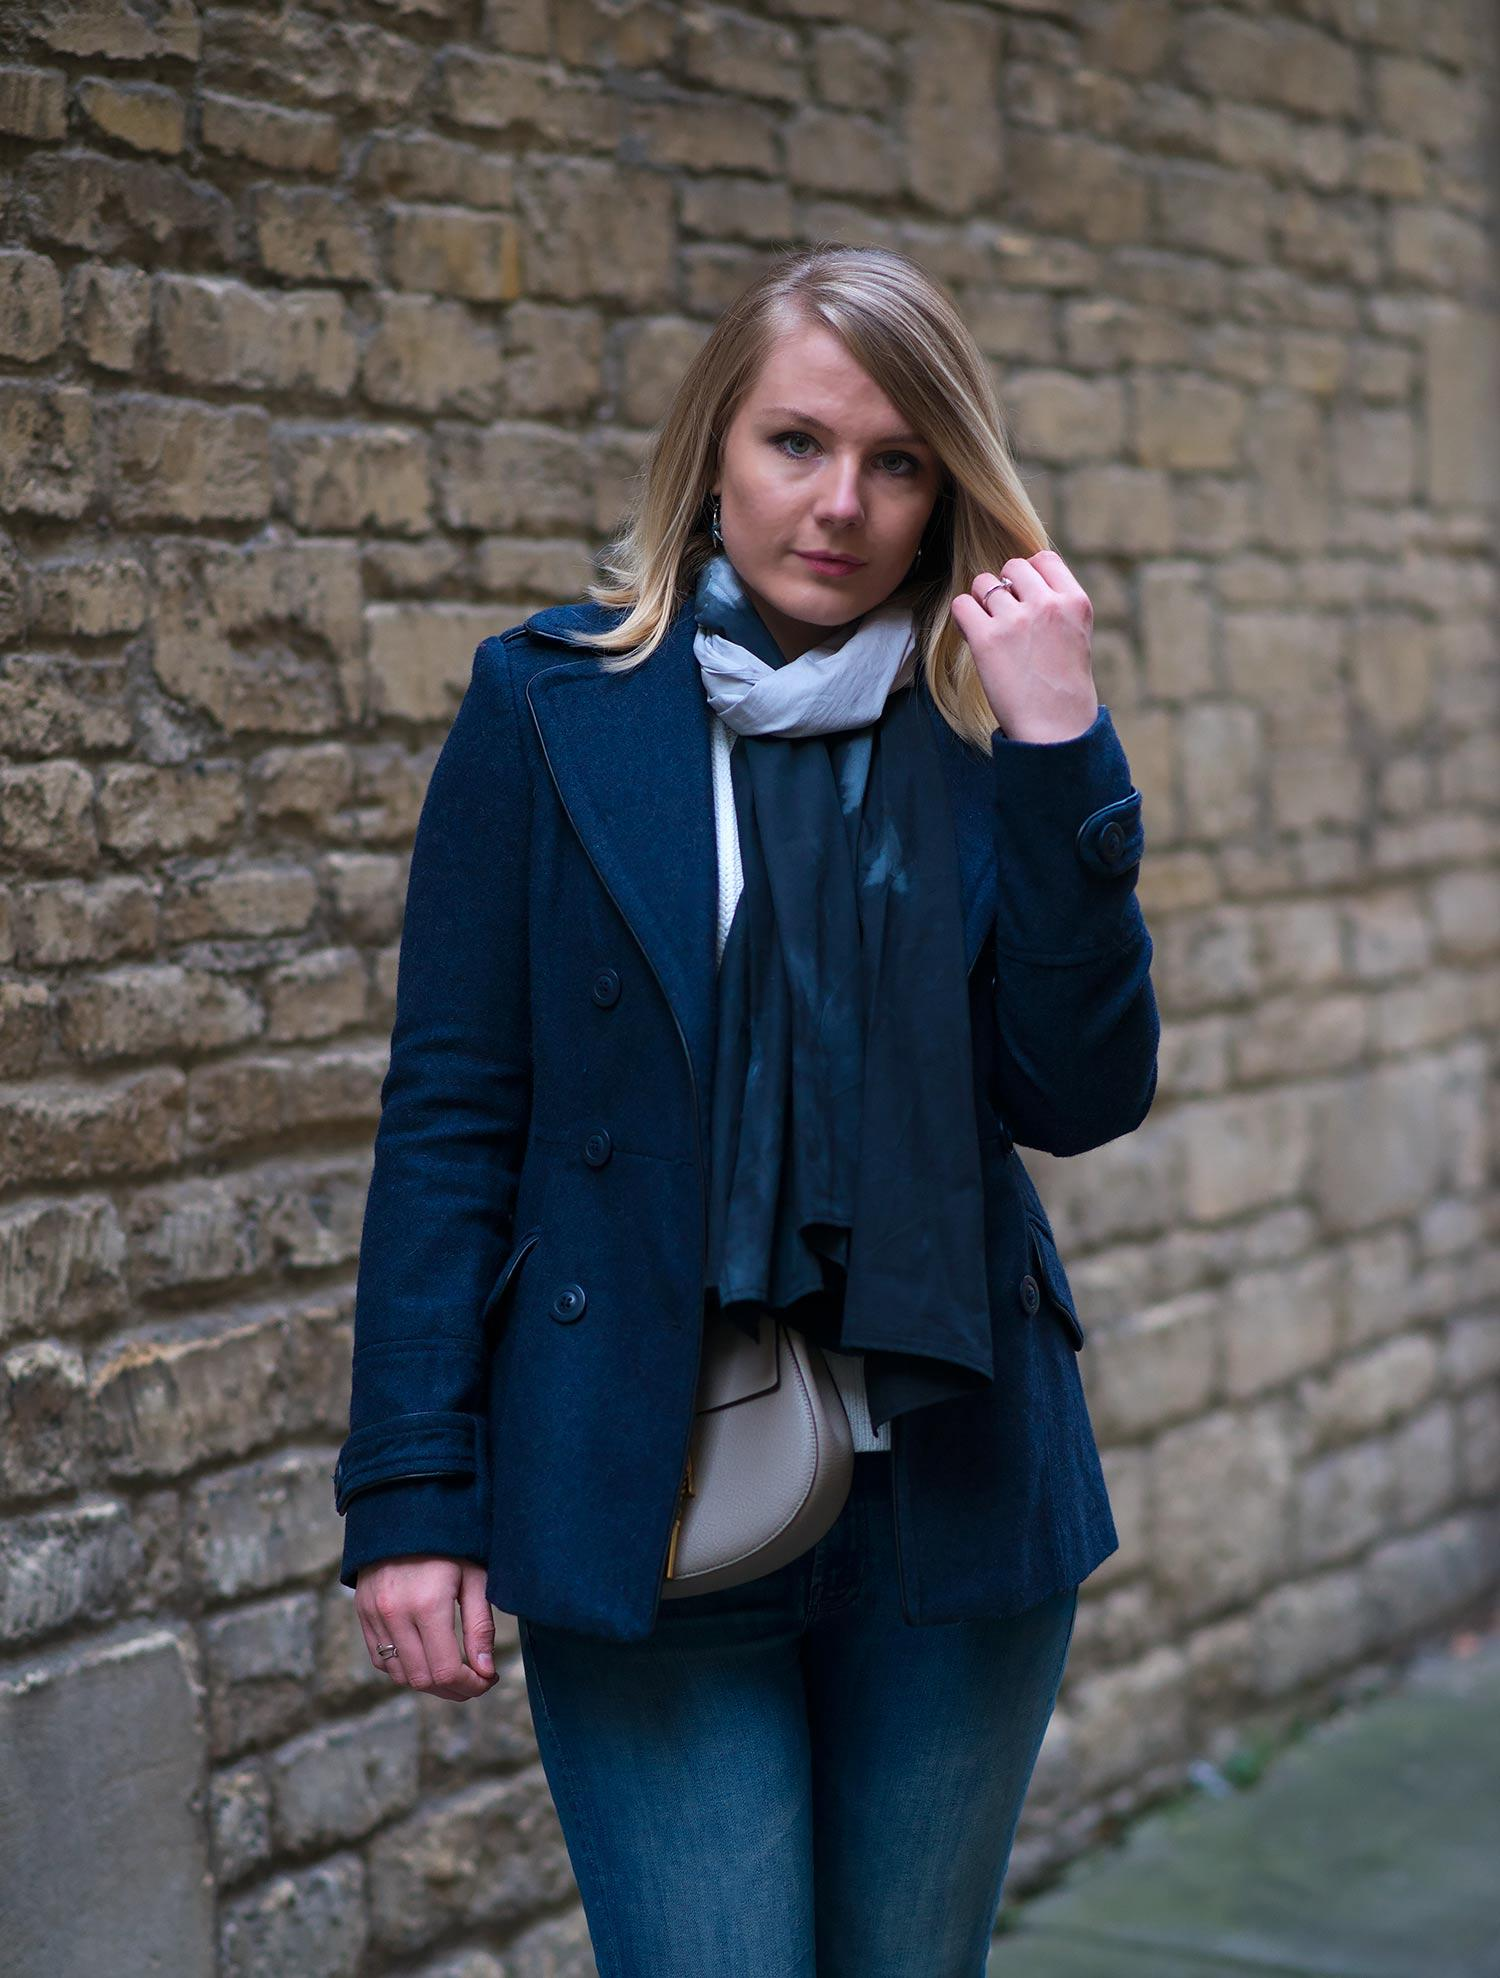 lorna-burford-navy-outfit-fashion-blogger